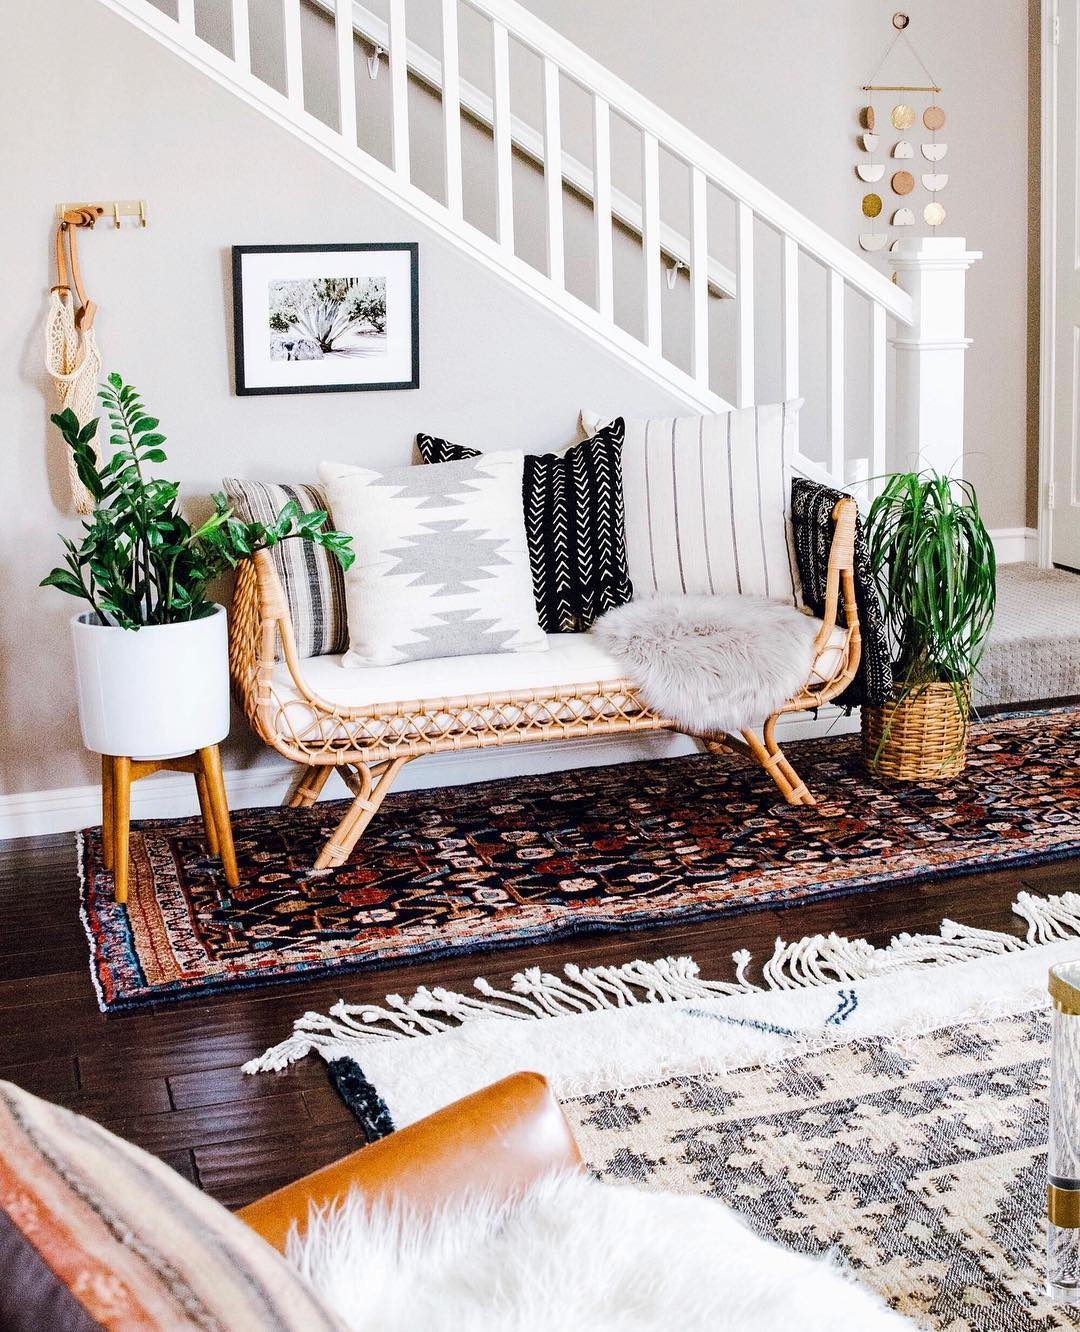 This Boho-Chic Sitting Area Is a Brilliant Solution for Awkward Entryways | Hunker